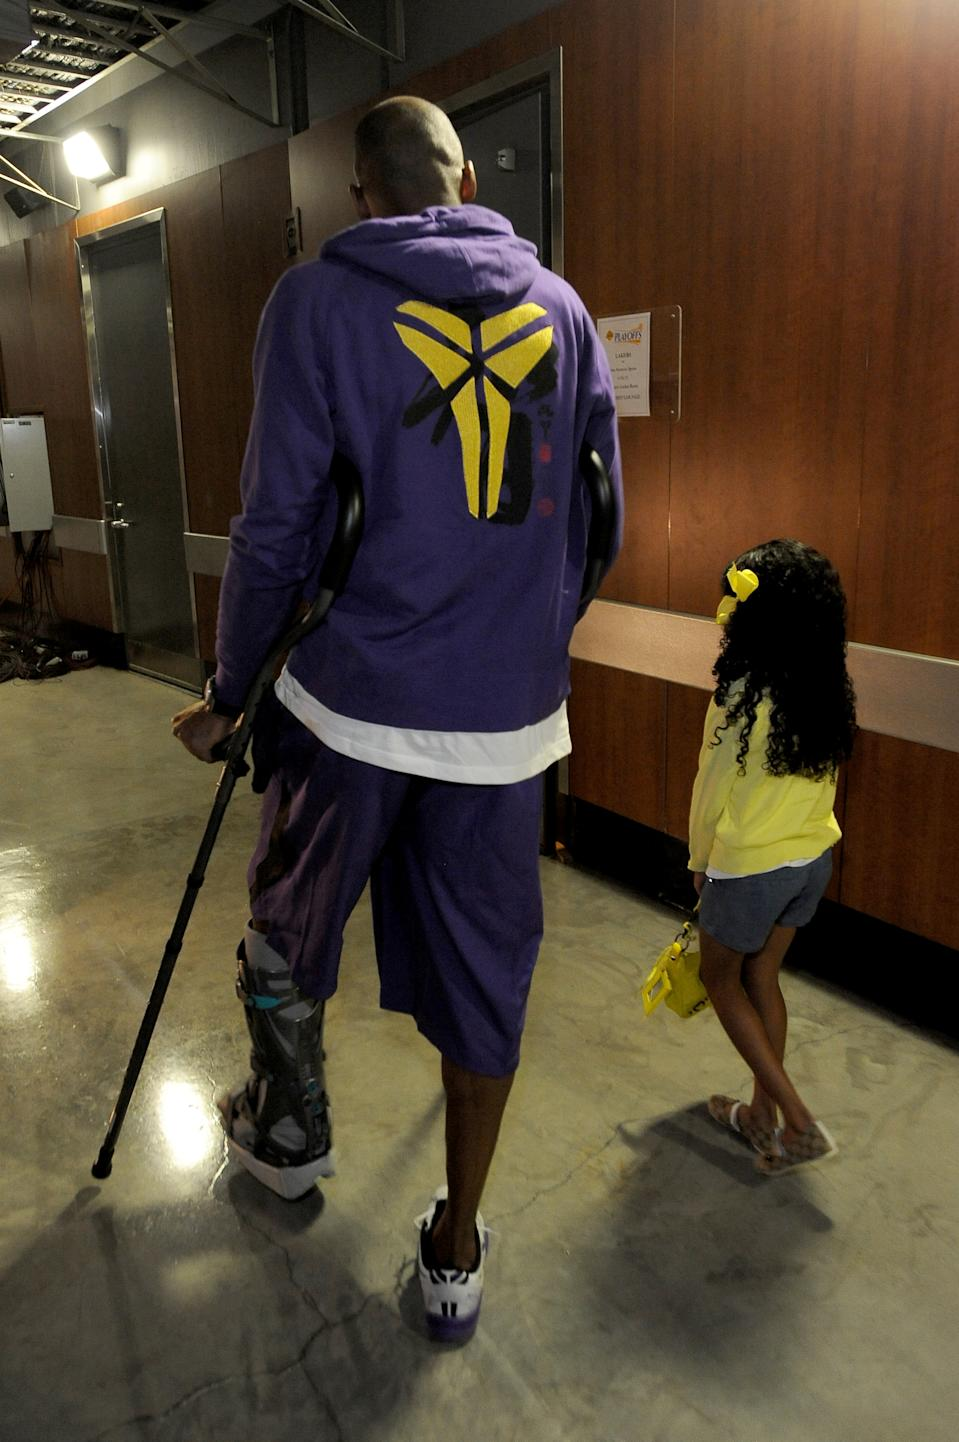 Kobe Bryant #24 of the Los Angeles Lakers walks with his daughter Gianna Maria-Onore Bryant at Staples Center prior Game Four of the Western Conference Quarterfinals against the San Antonio Spurs during the 2013 NBA Playoffs on April 28, 2013 in Los Angeles, California. (Photo by Andrew D. Bernstein/NBAE via Getty Images)